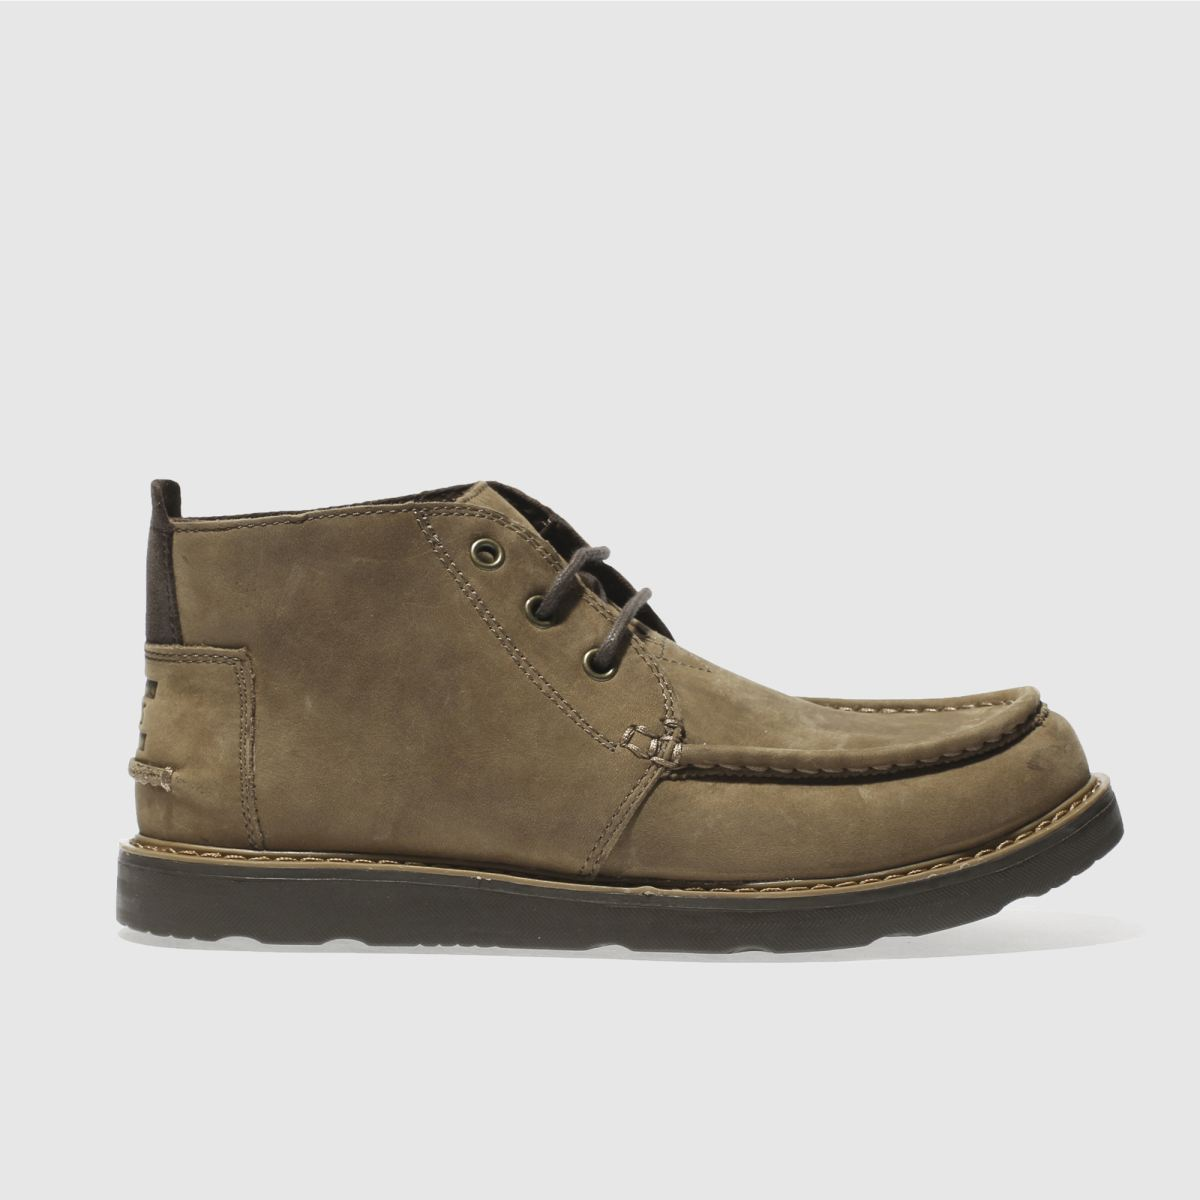 TOMS Toms Brown Chukka Boots